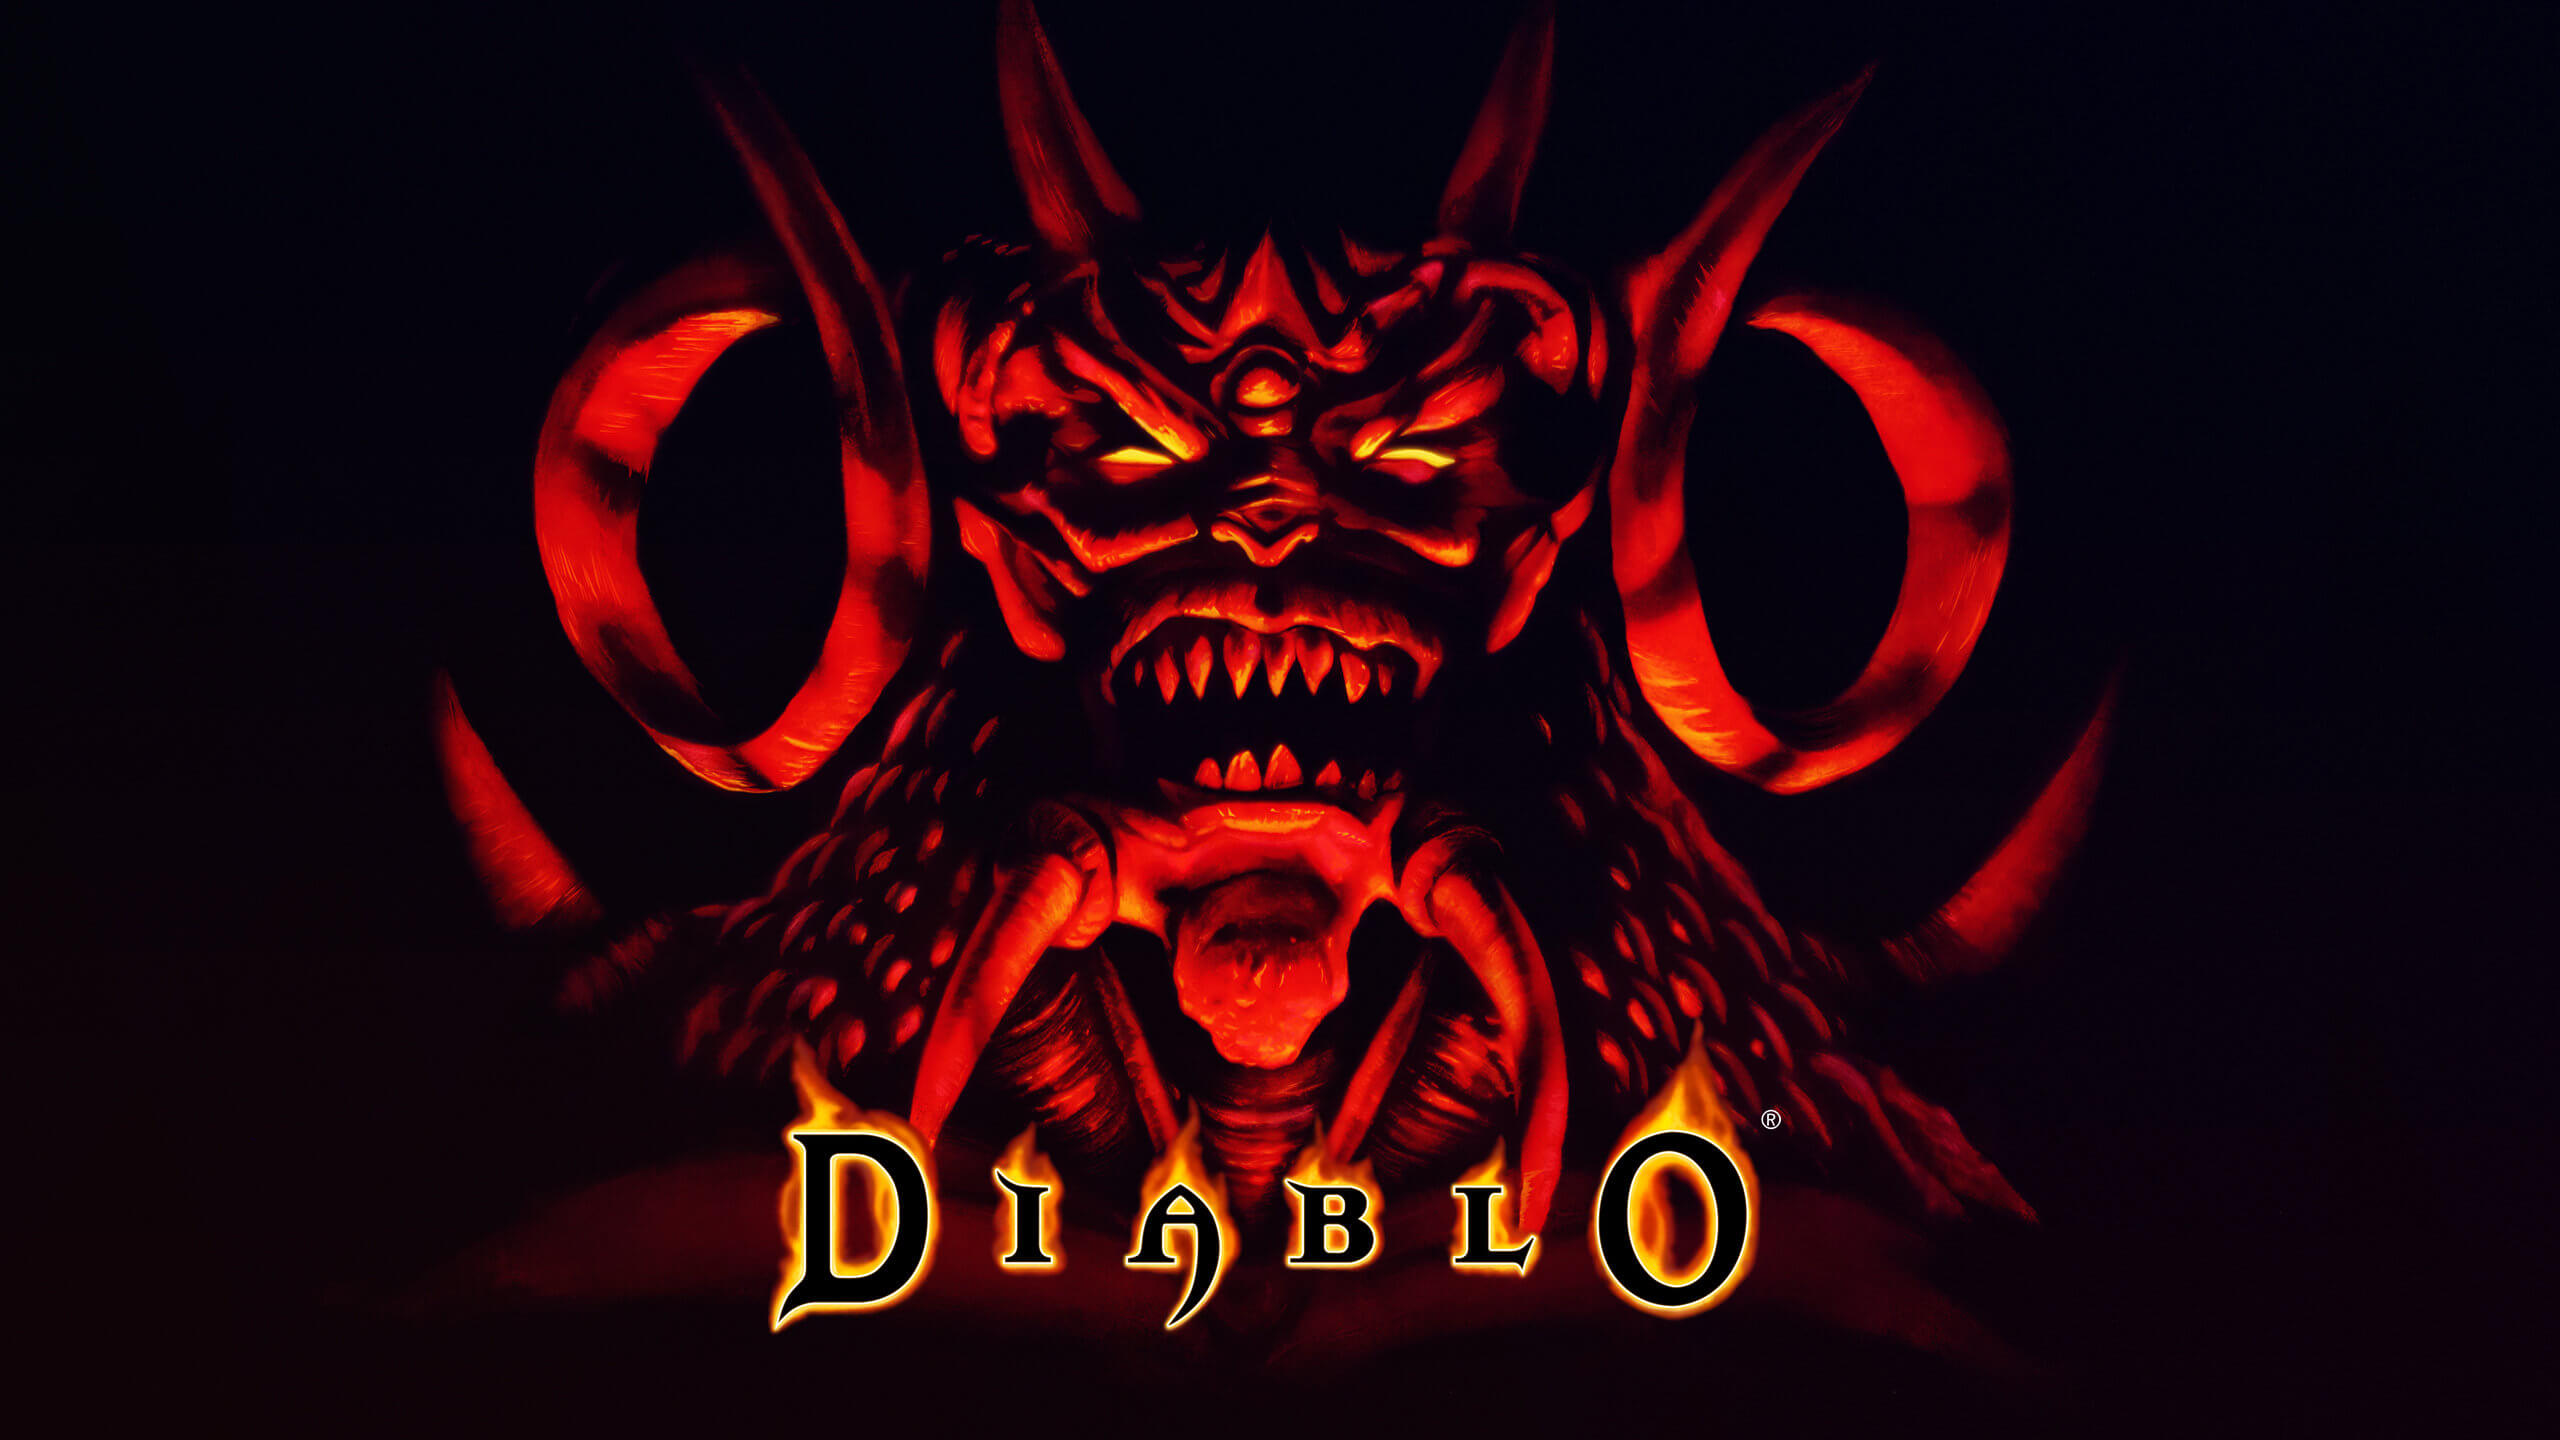 Diablo is available to play for free in your web browser